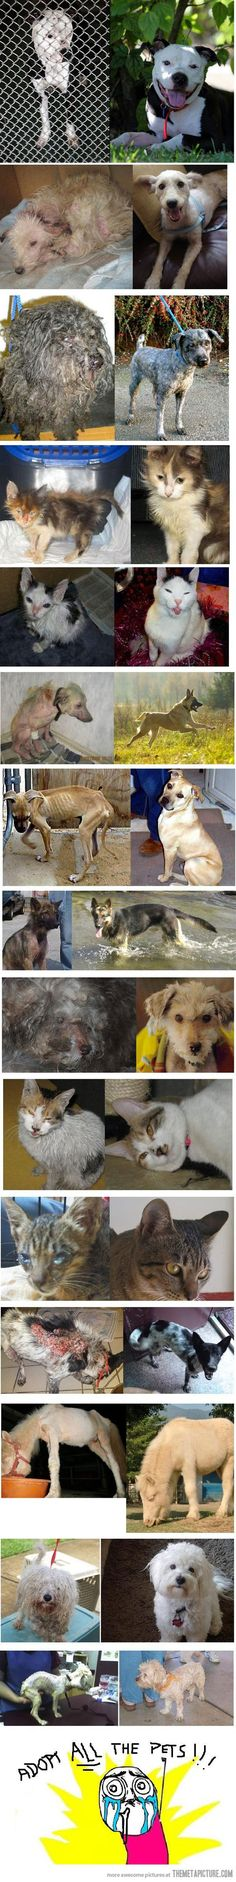 Rescued animals: before and after!